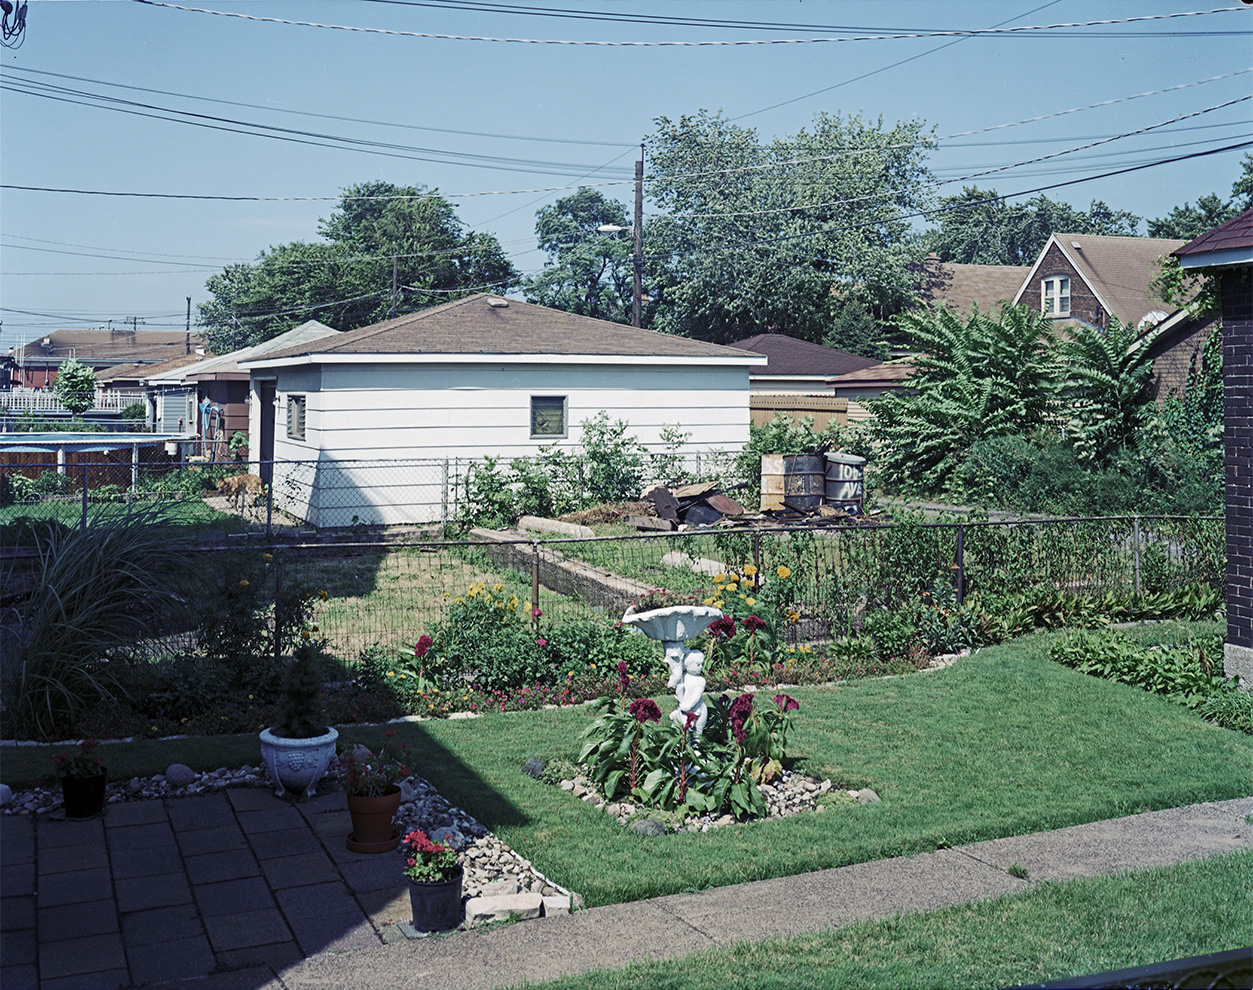 BackyardsEastSideChicago1987.jpg